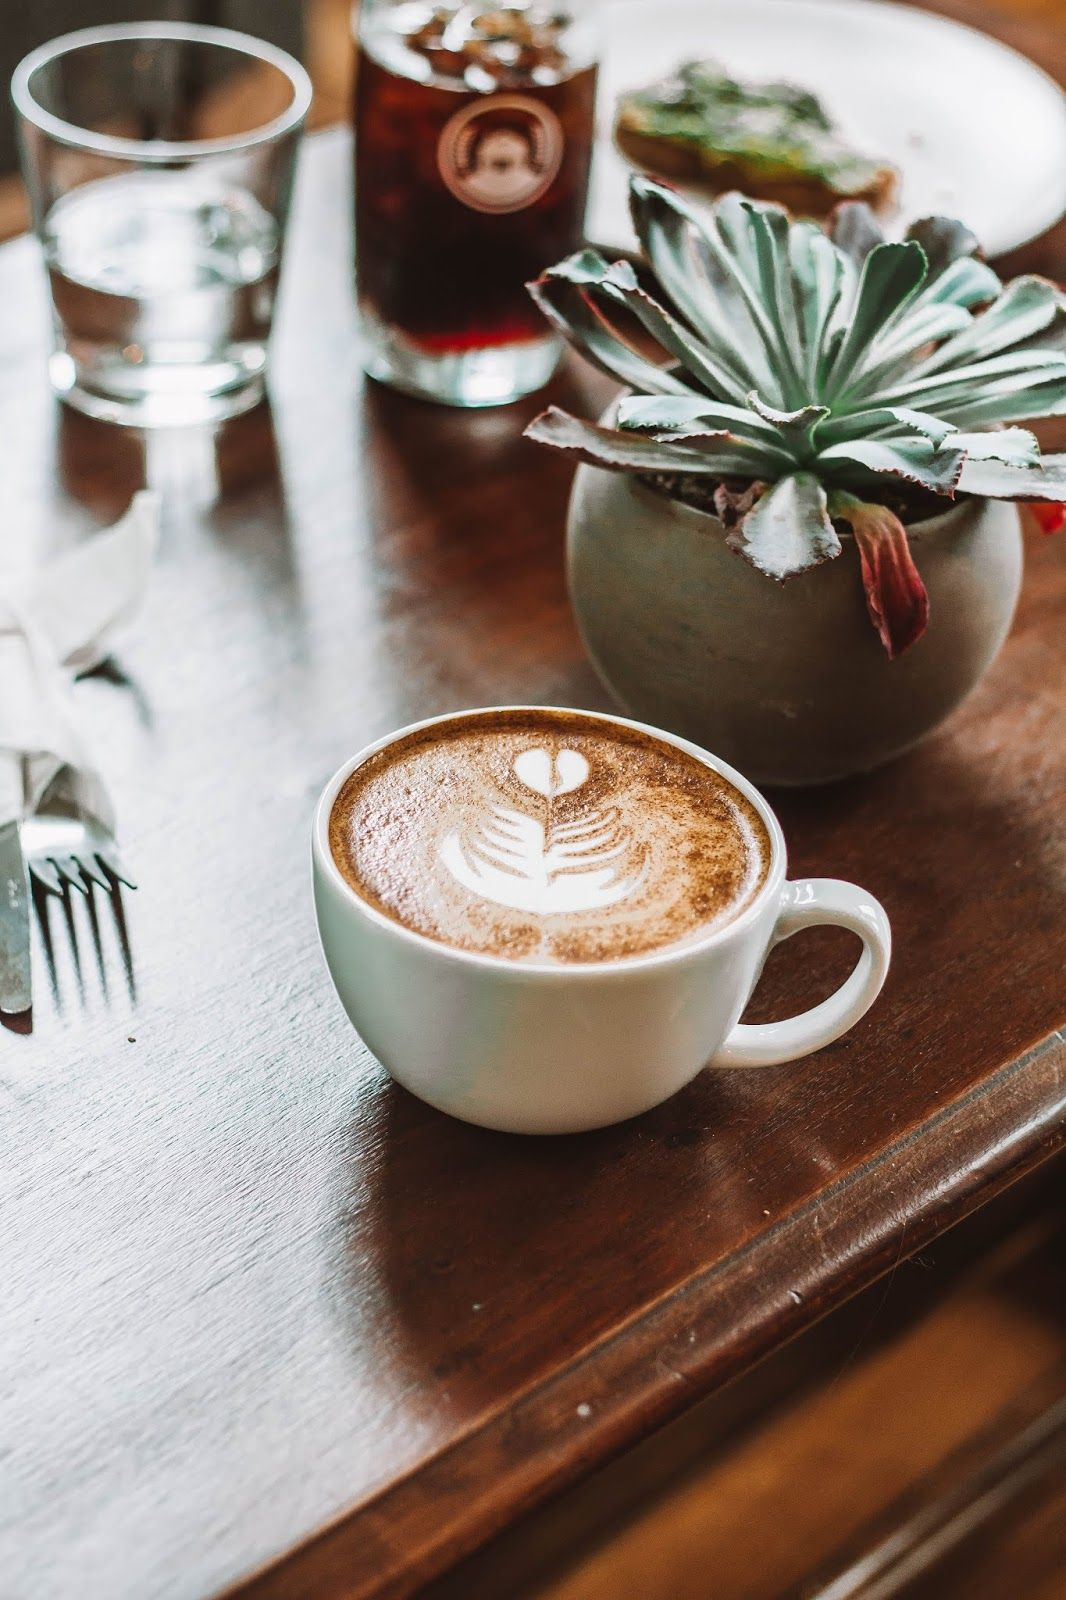 Nashville Travel Guide The 10 Best Coffee Spots Nashville Coffee Coffee Recipes Best Coffee